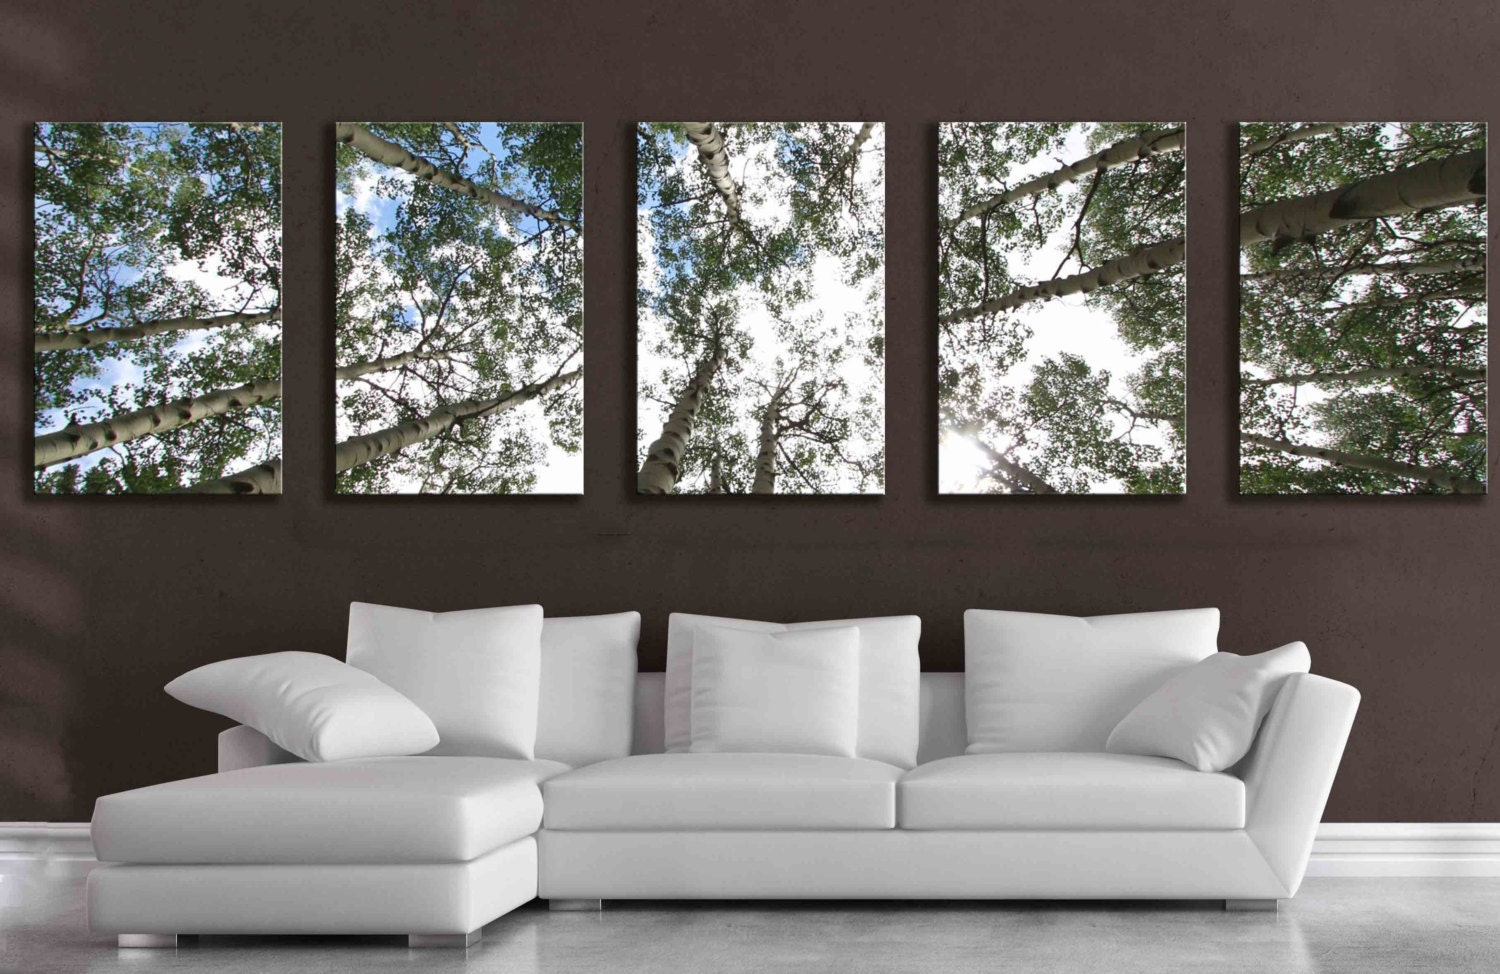 Large M Wall Decor : Large panel wall art aspen tree canvas decor five multipiece